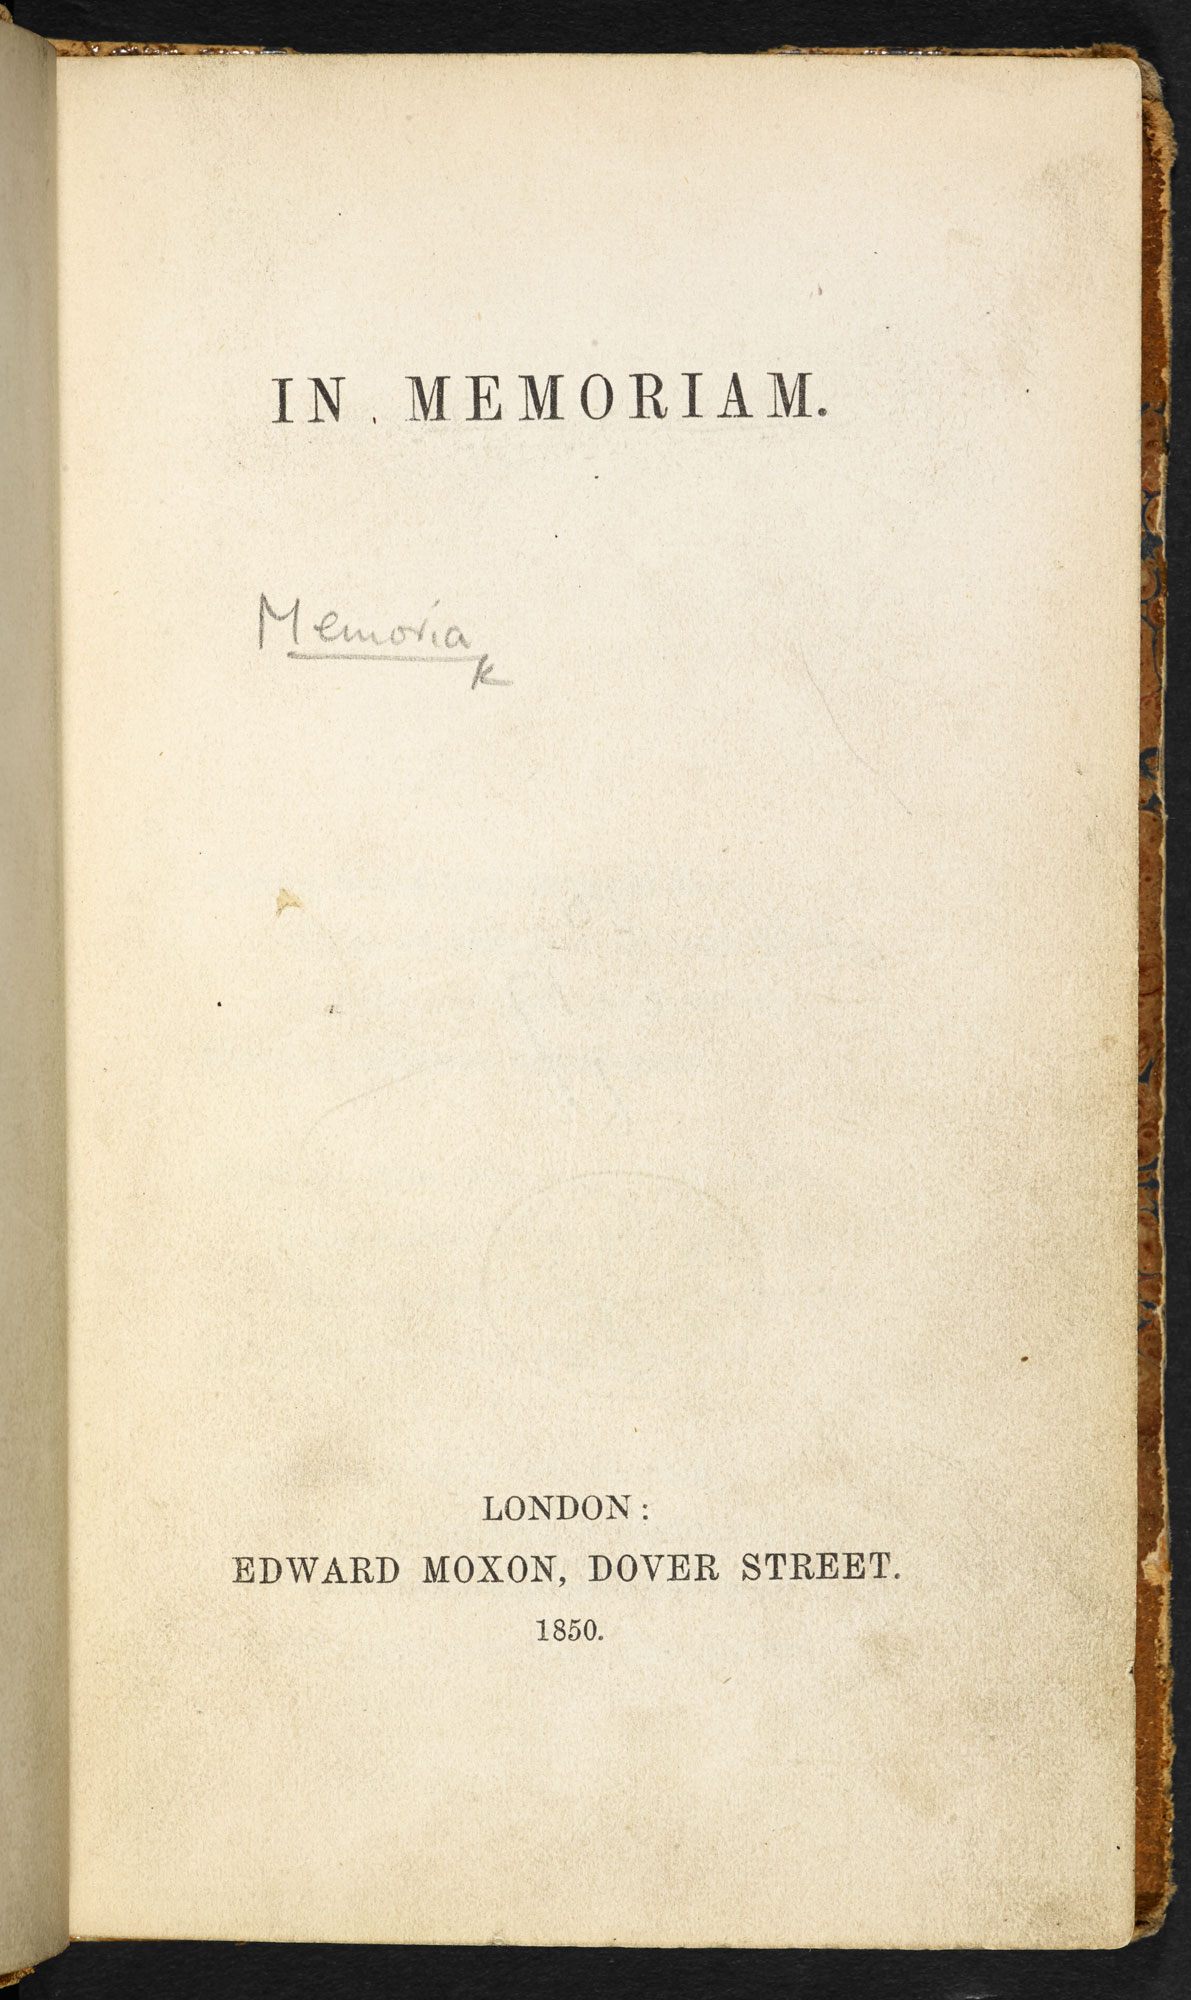 In Memoriam A.H.H. by Alfred Lord Tennyson [page: title page]